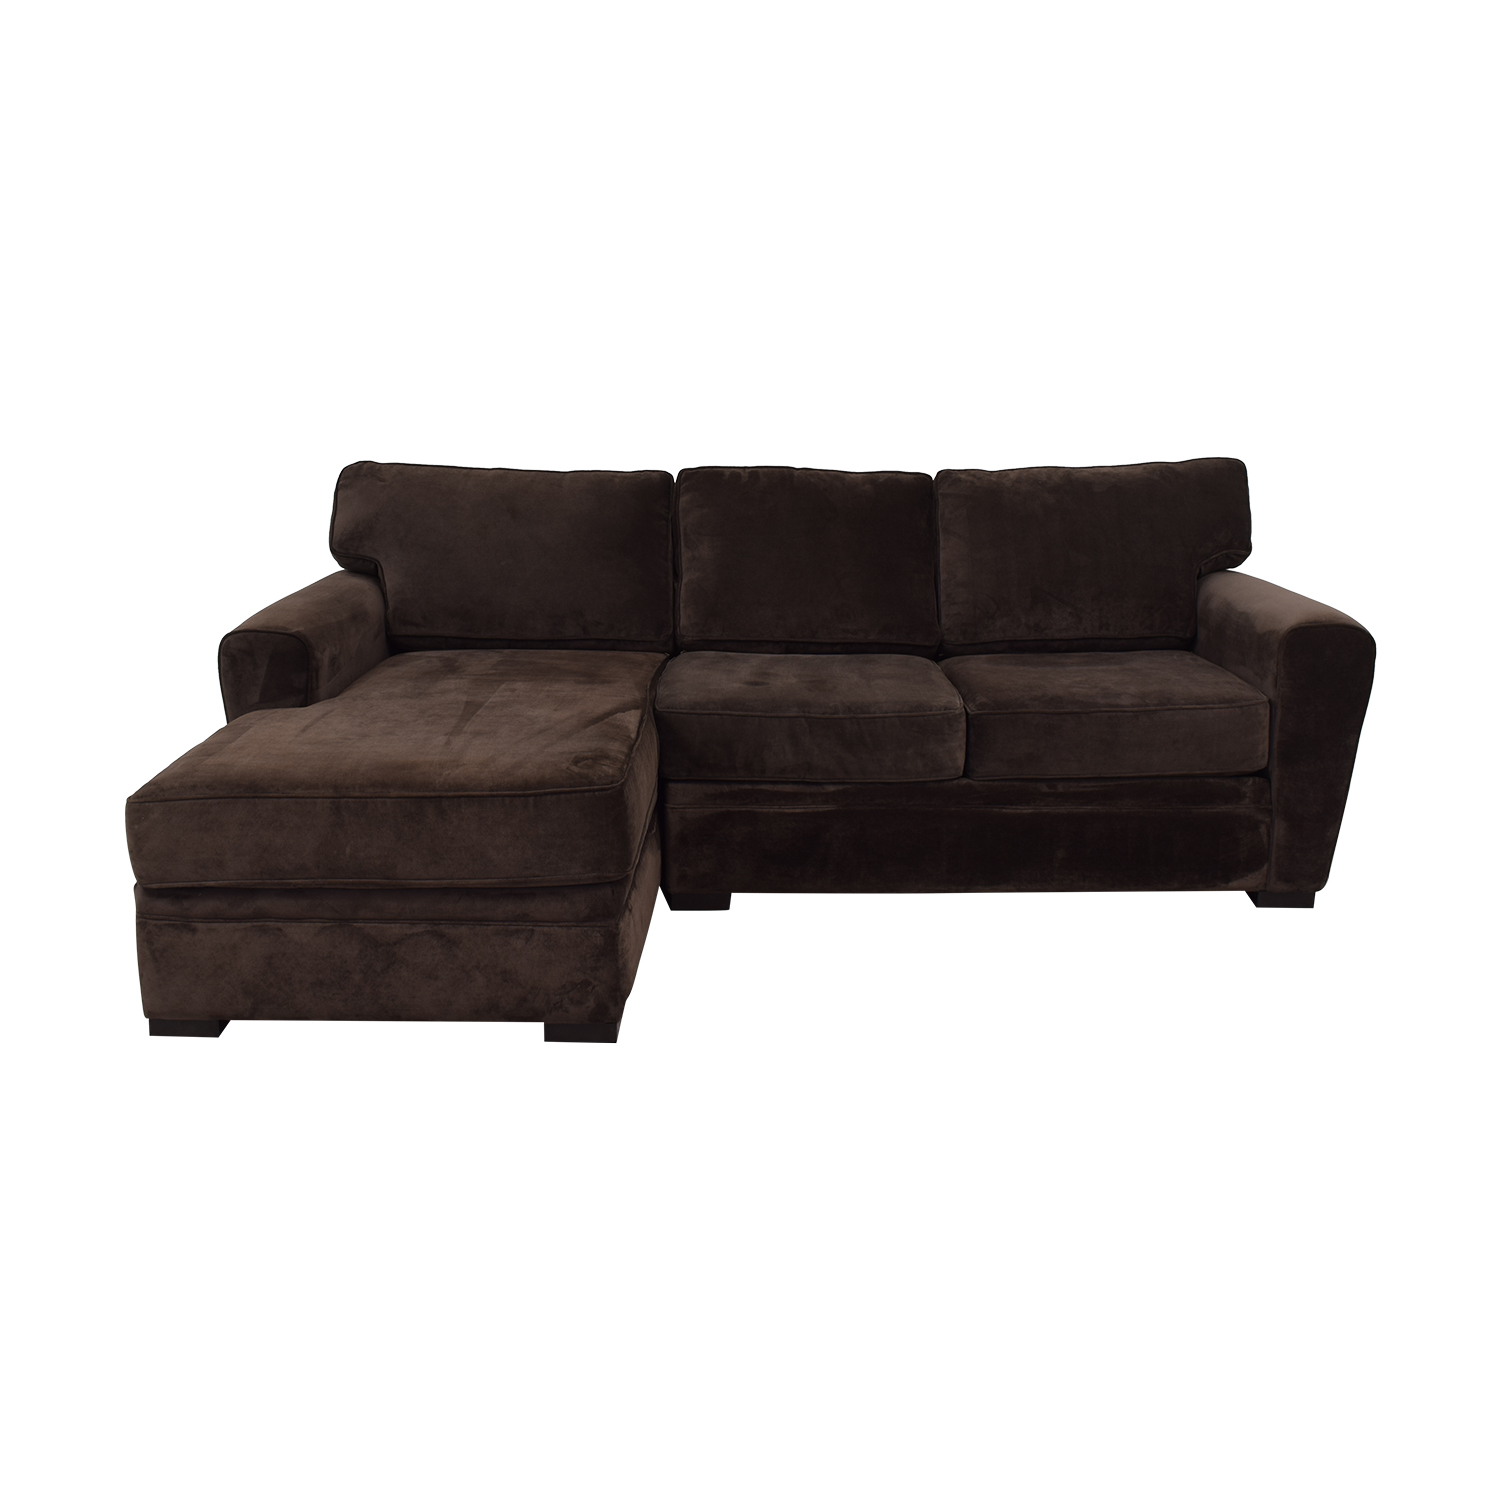 Raymour & Flanigan Raymour & Flanigan Artemis II Brown Microfiber Chaise Sectional for sale